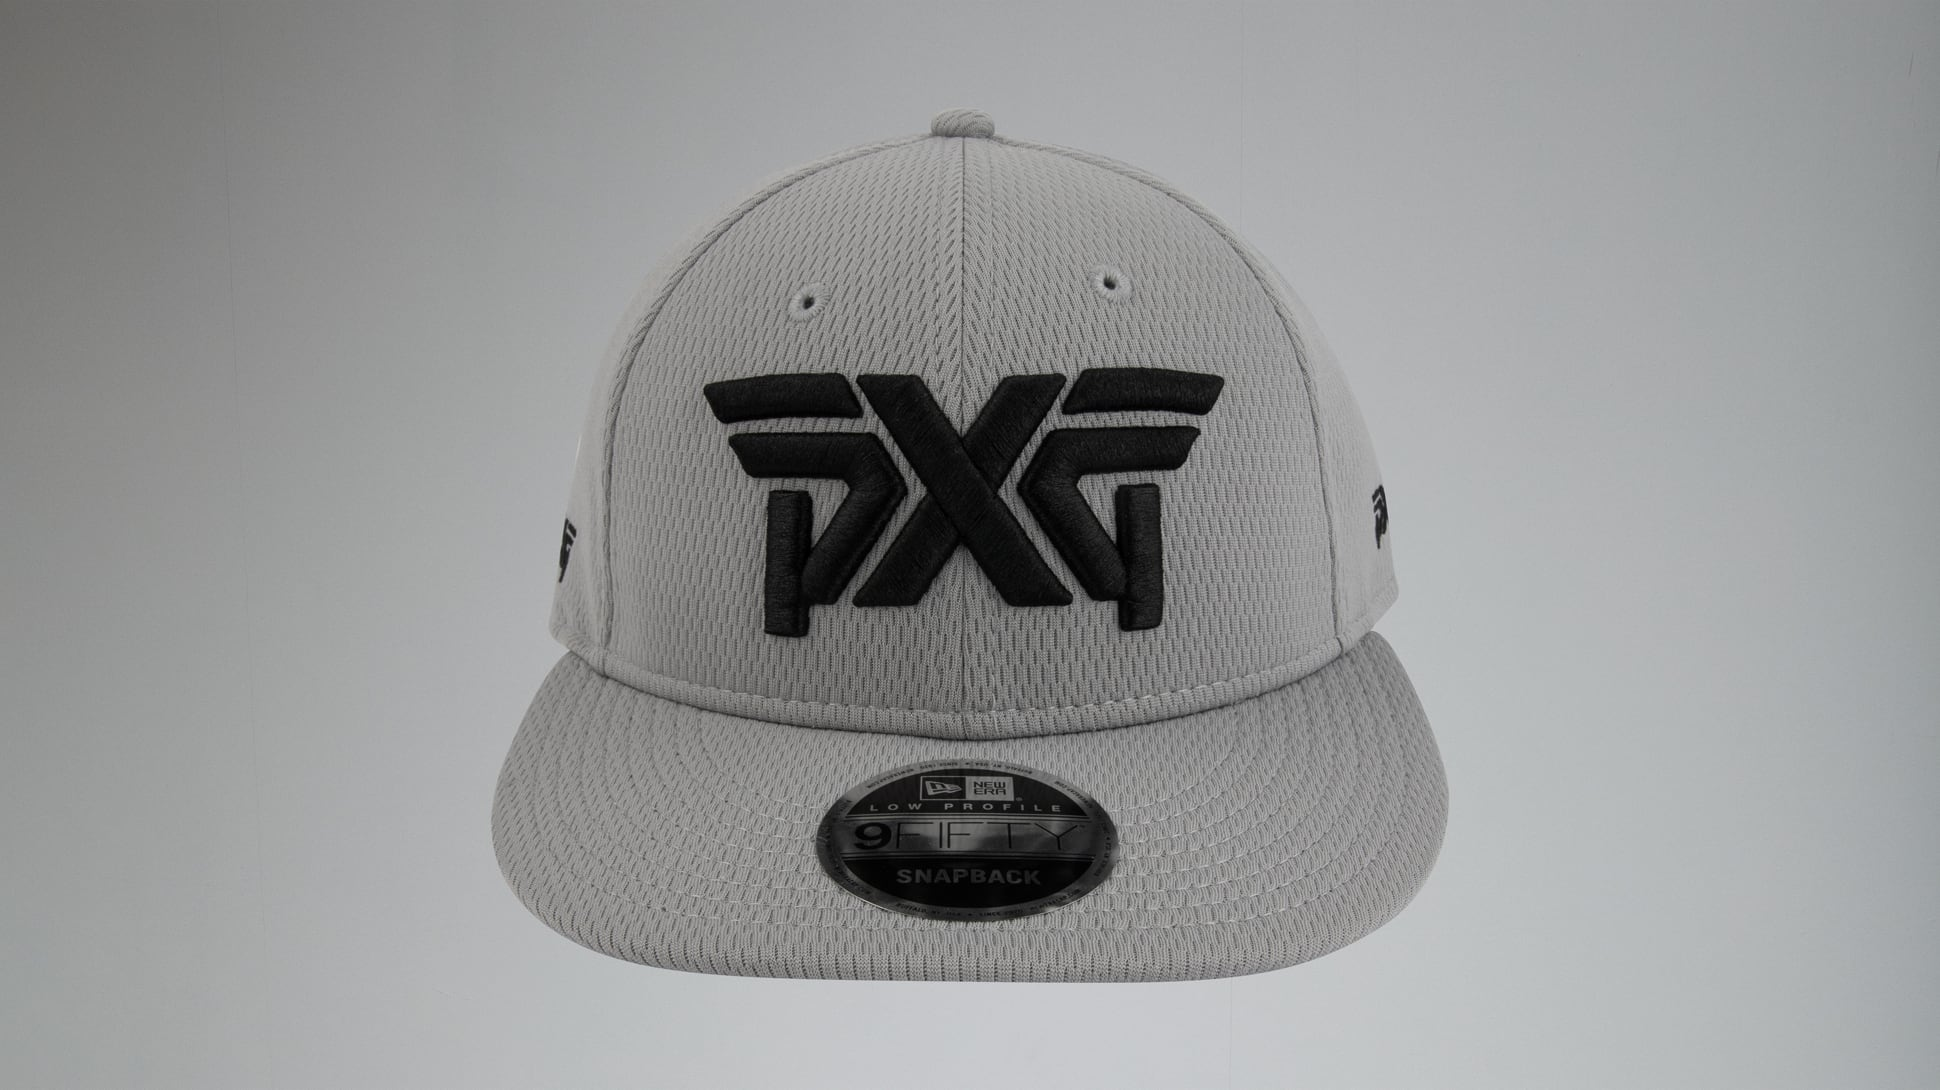 Performance Line 9FIFTY Low Profile Cap Image 1